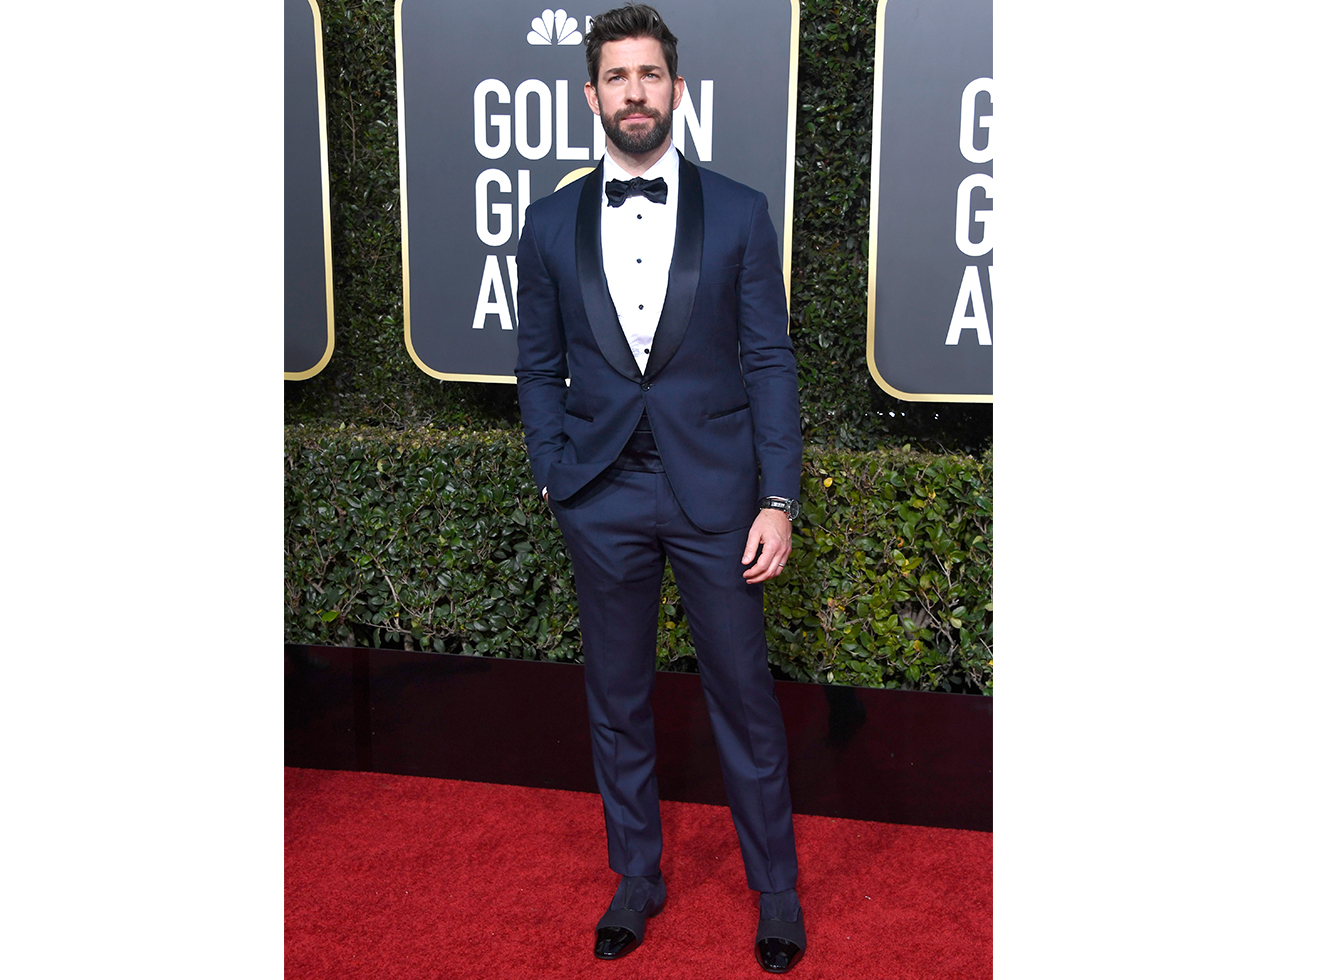 John Krasinski attends the 76th Annual Golden Globe Awards at The Beverly Hilton Hotel on January 6, 2019 in Beverly Hills, California.